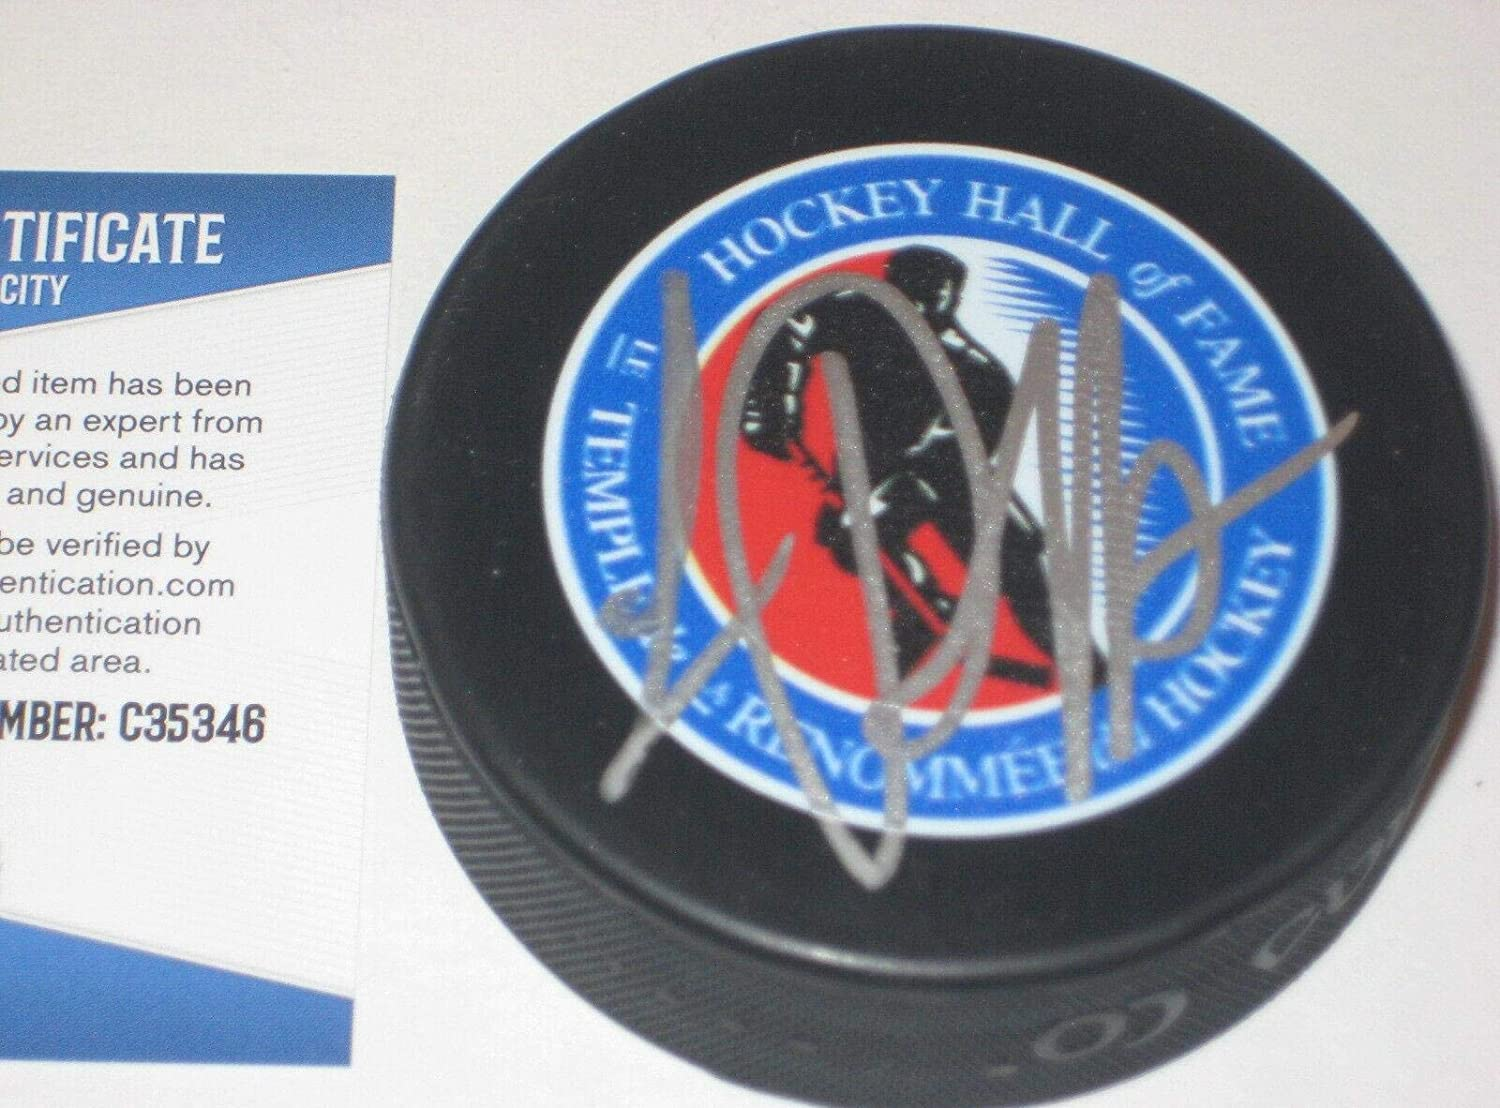 Luc Robitaille Signed Puck - L.A. HALL OF FAME w Beckett COA - Beckett Authentication - Autographed NHL Pucks